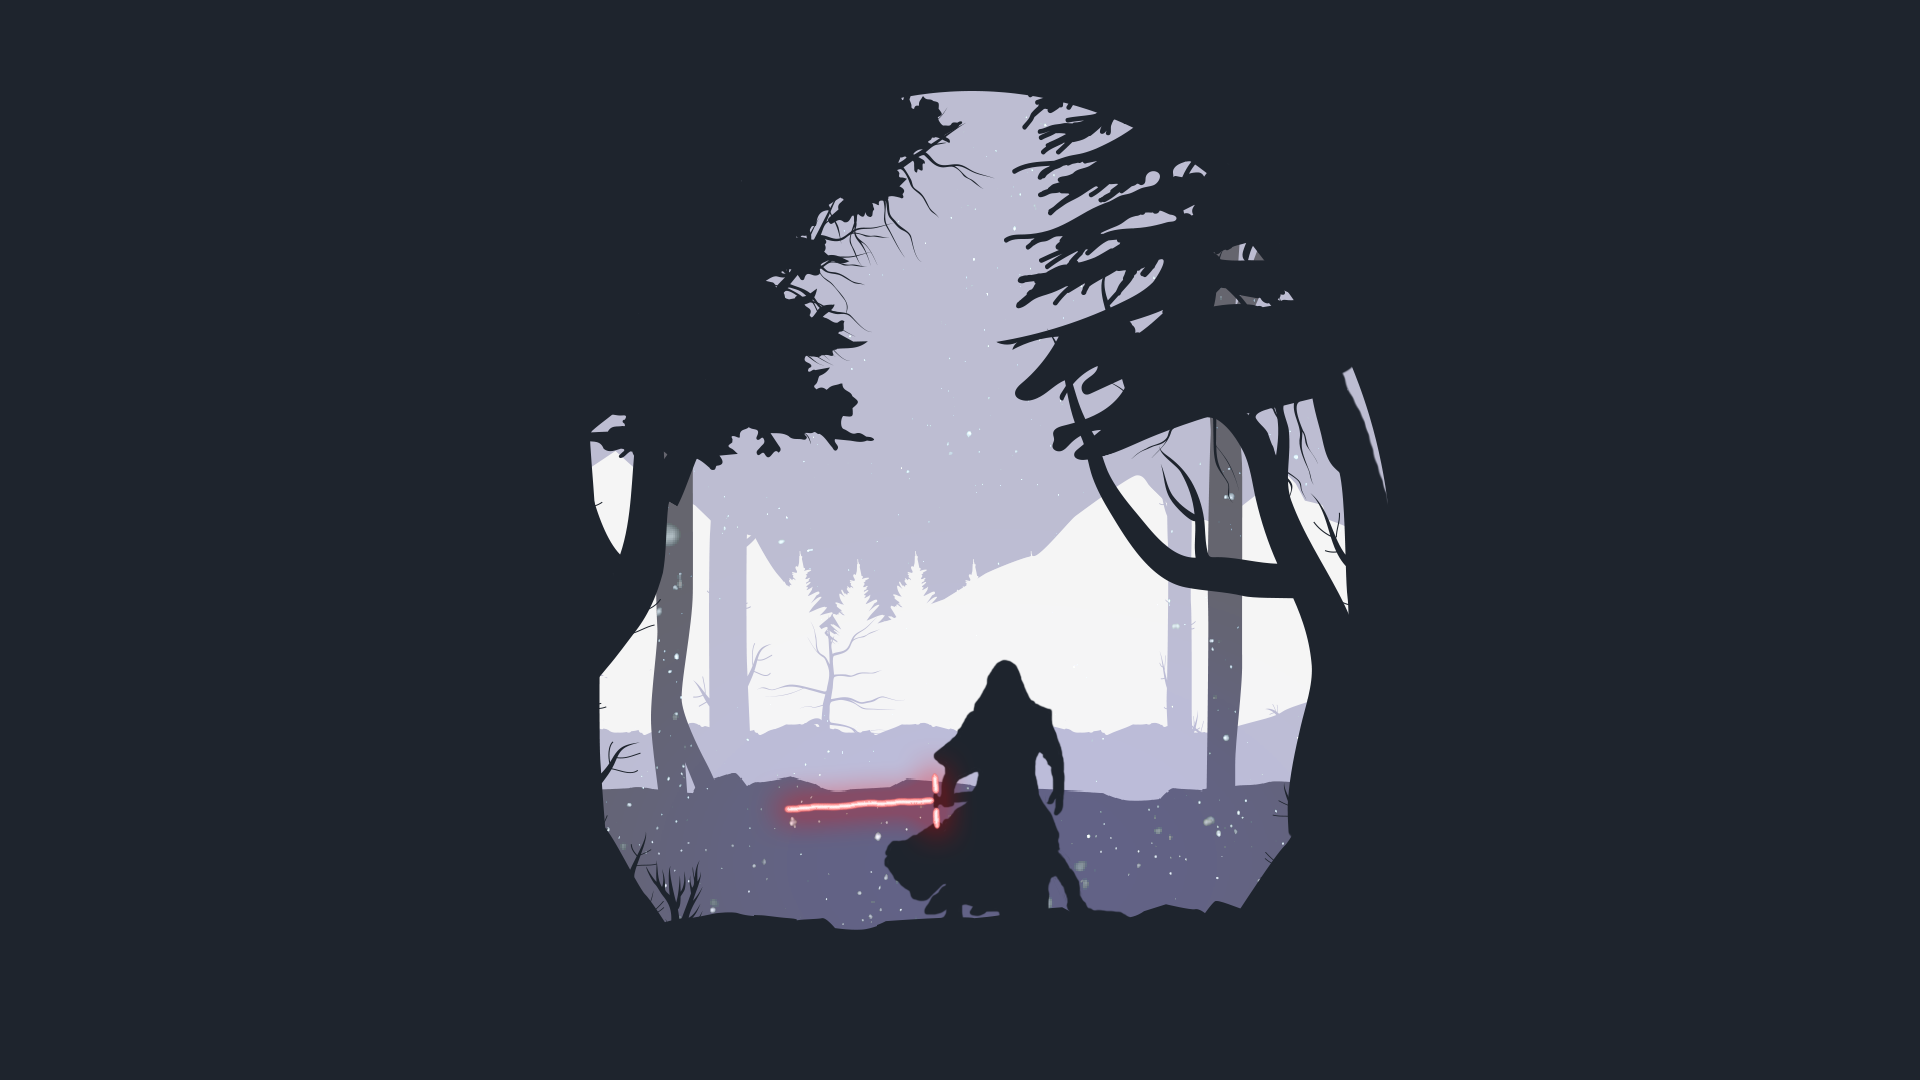 Star-Wars-Desktop-Wallpaper-The-Force-Unleashed-Kylo-Ren